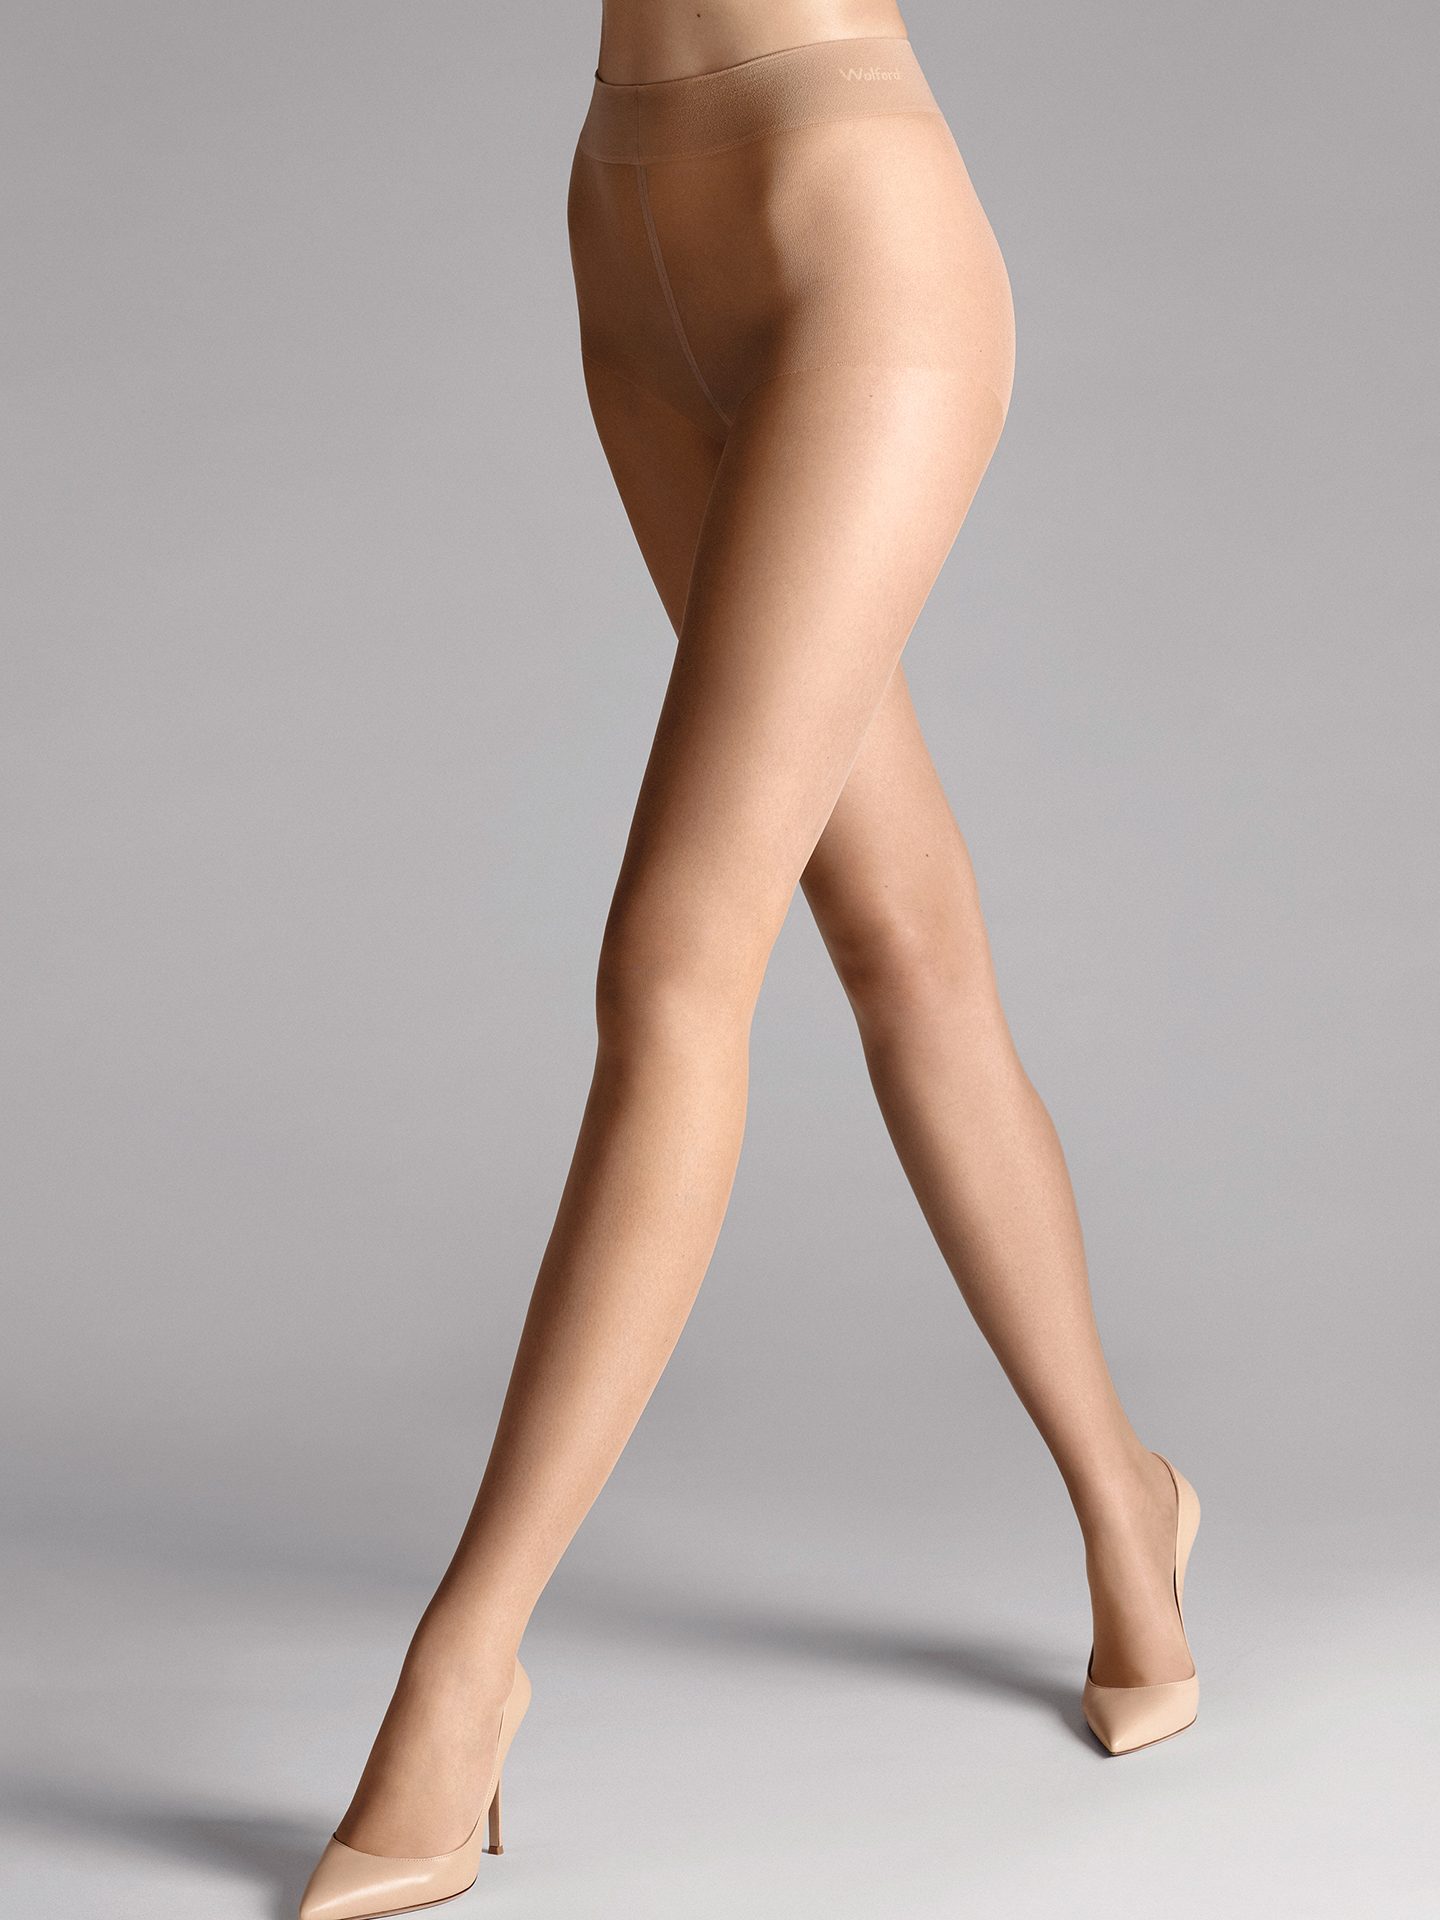 Pure 10 Tights - 4738 - S | Sportbekleidung > Sporthosen > Tights | Wolford